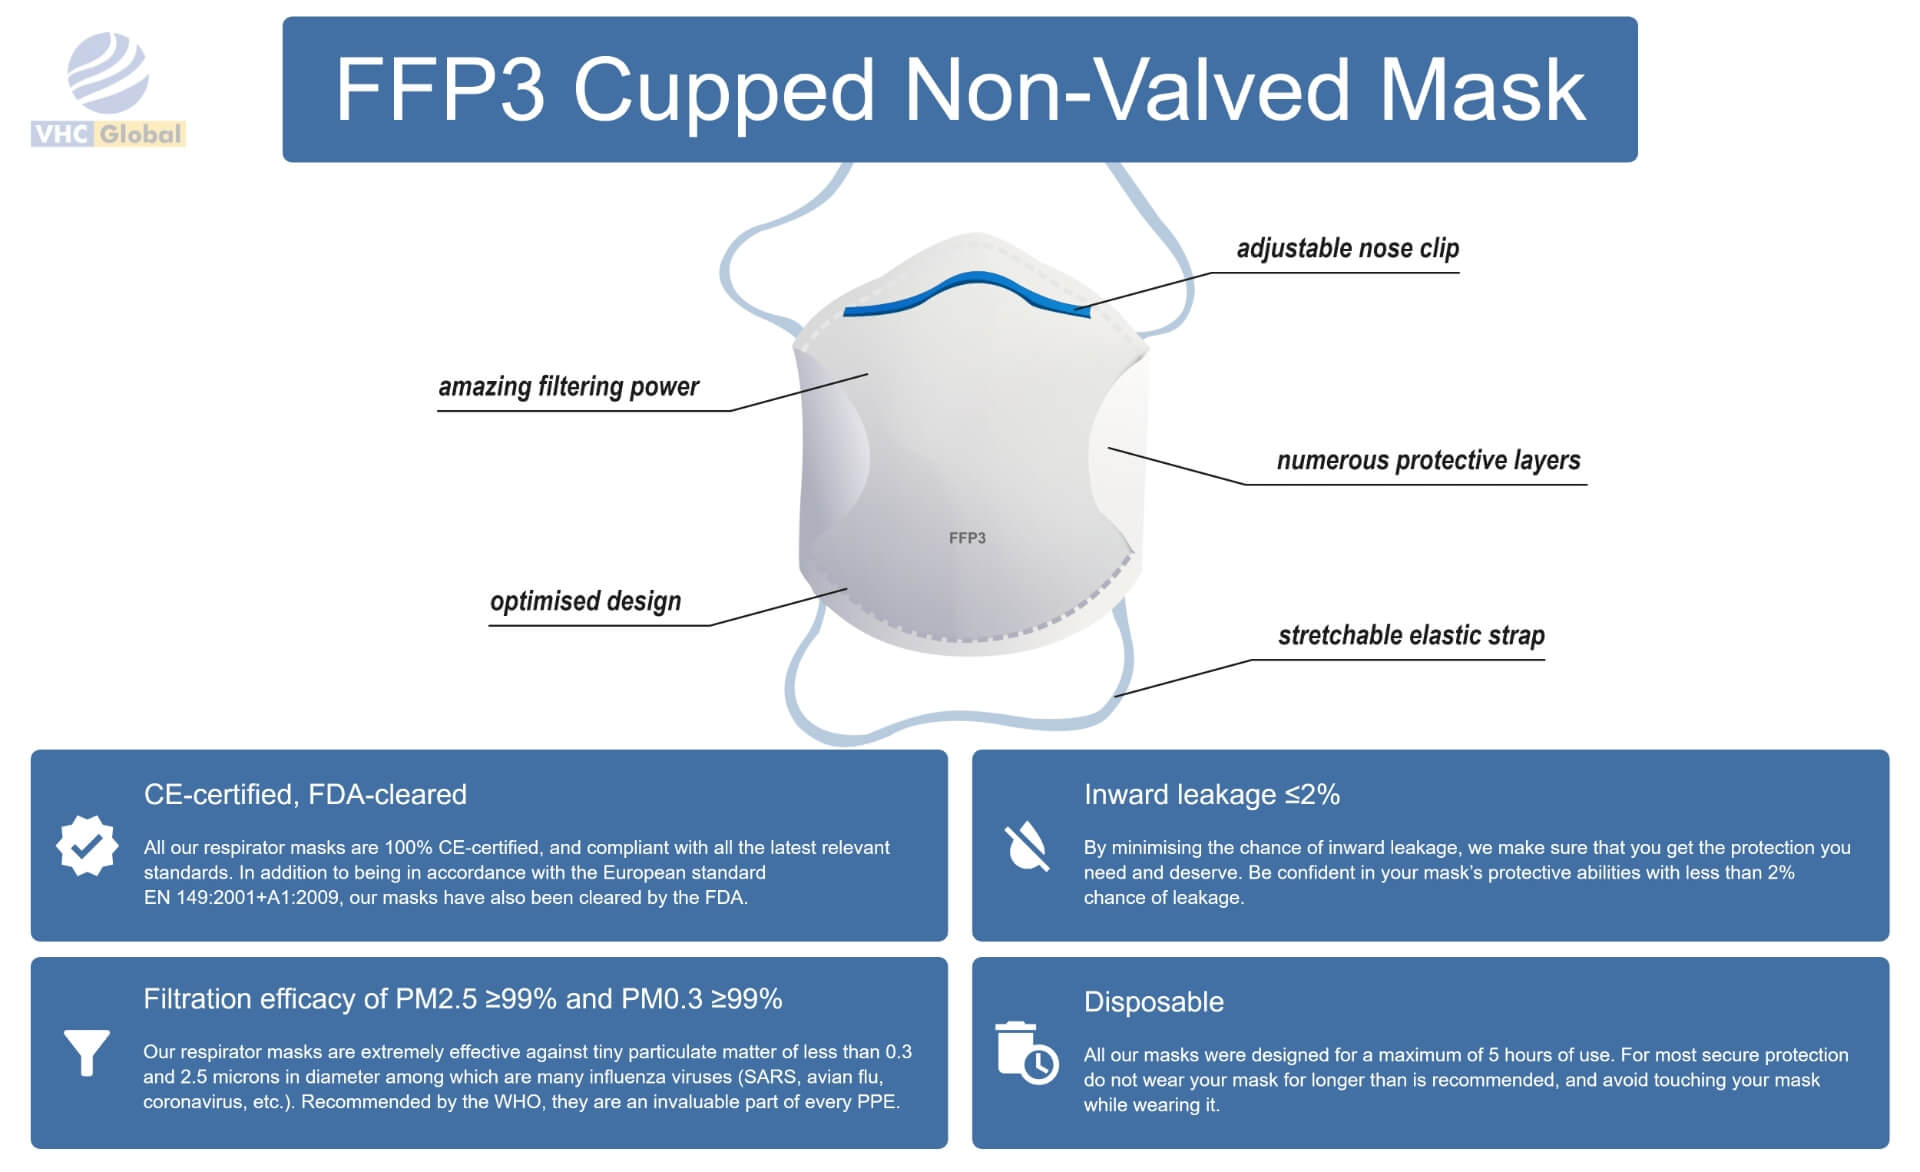 Infographic for the FFP3 Cupped Non-Valved Mask. All details for this mask are on this infographic. From nose to the chin. Adjustable nose clip, improved breathability, numerous protective layers, amazing filtering power, optimized design and stretchable elastic strap